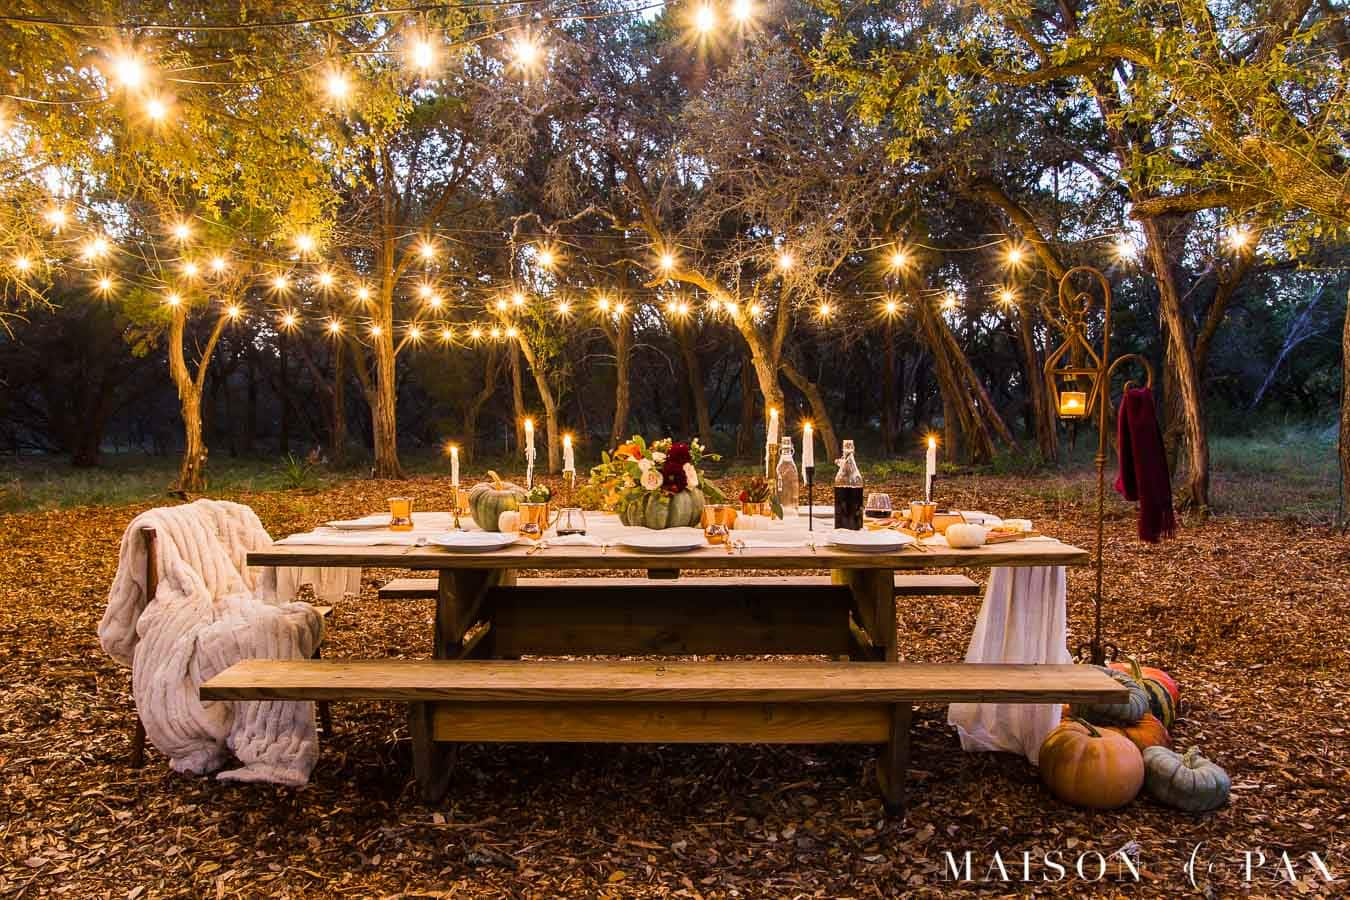 string lights over picnic table in wooded area set for Friendsgiving | Maison de Pax